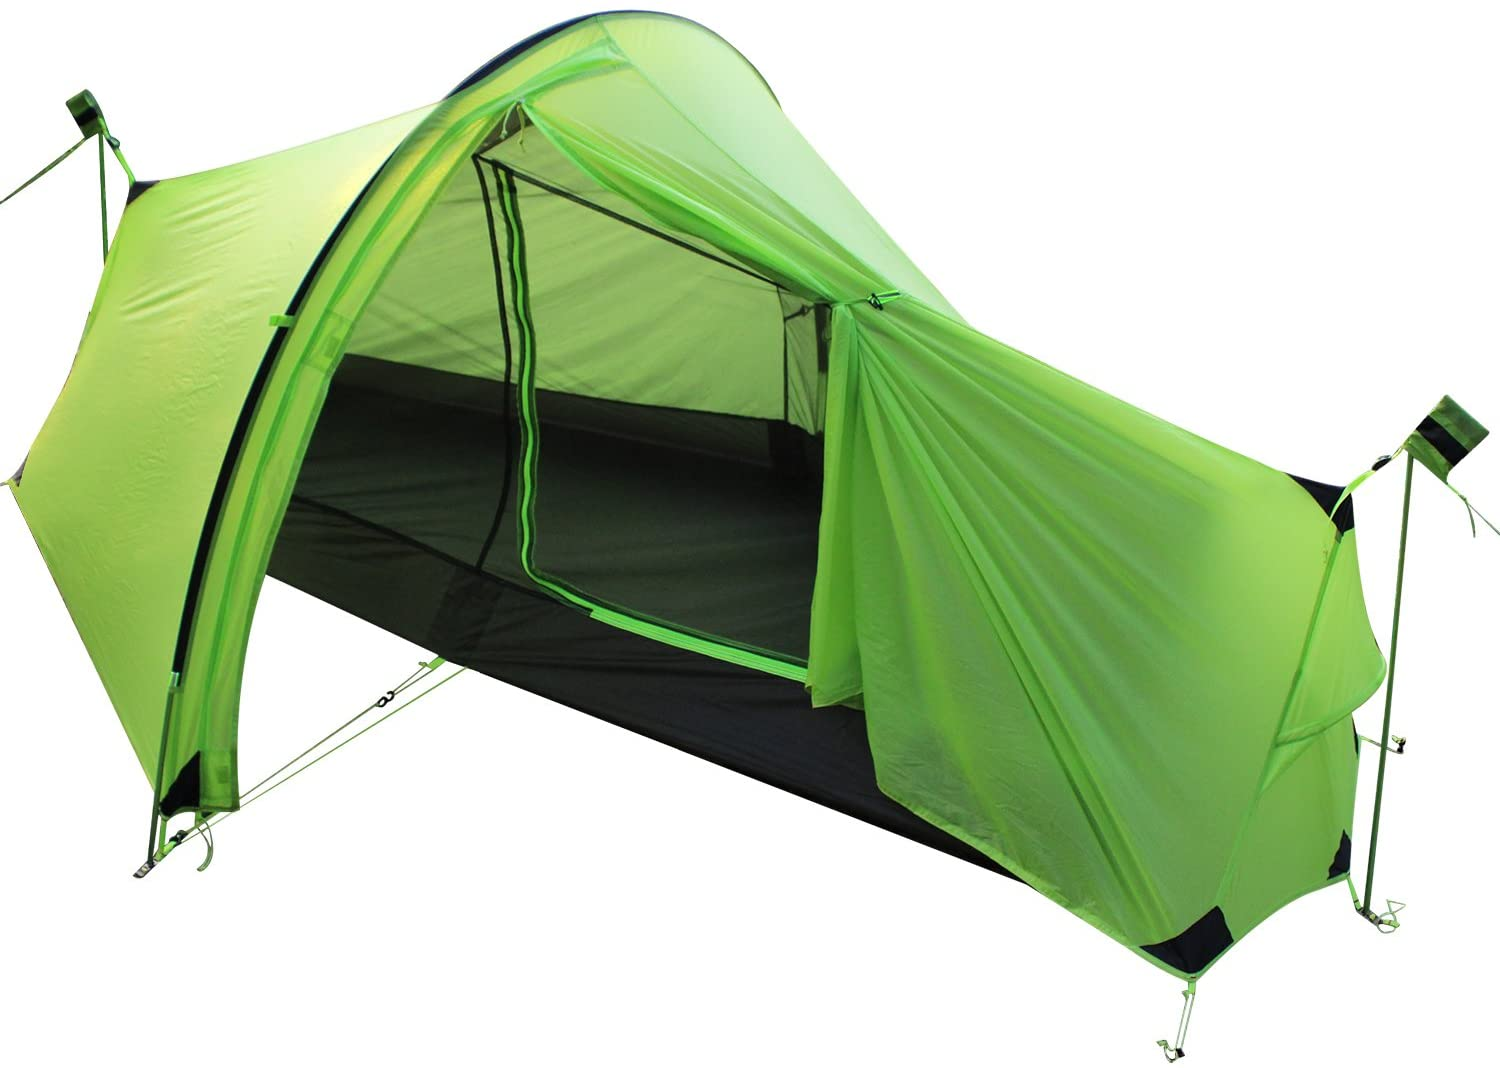 Ultralight Tent, Waterproof 1 Person Camping Tent